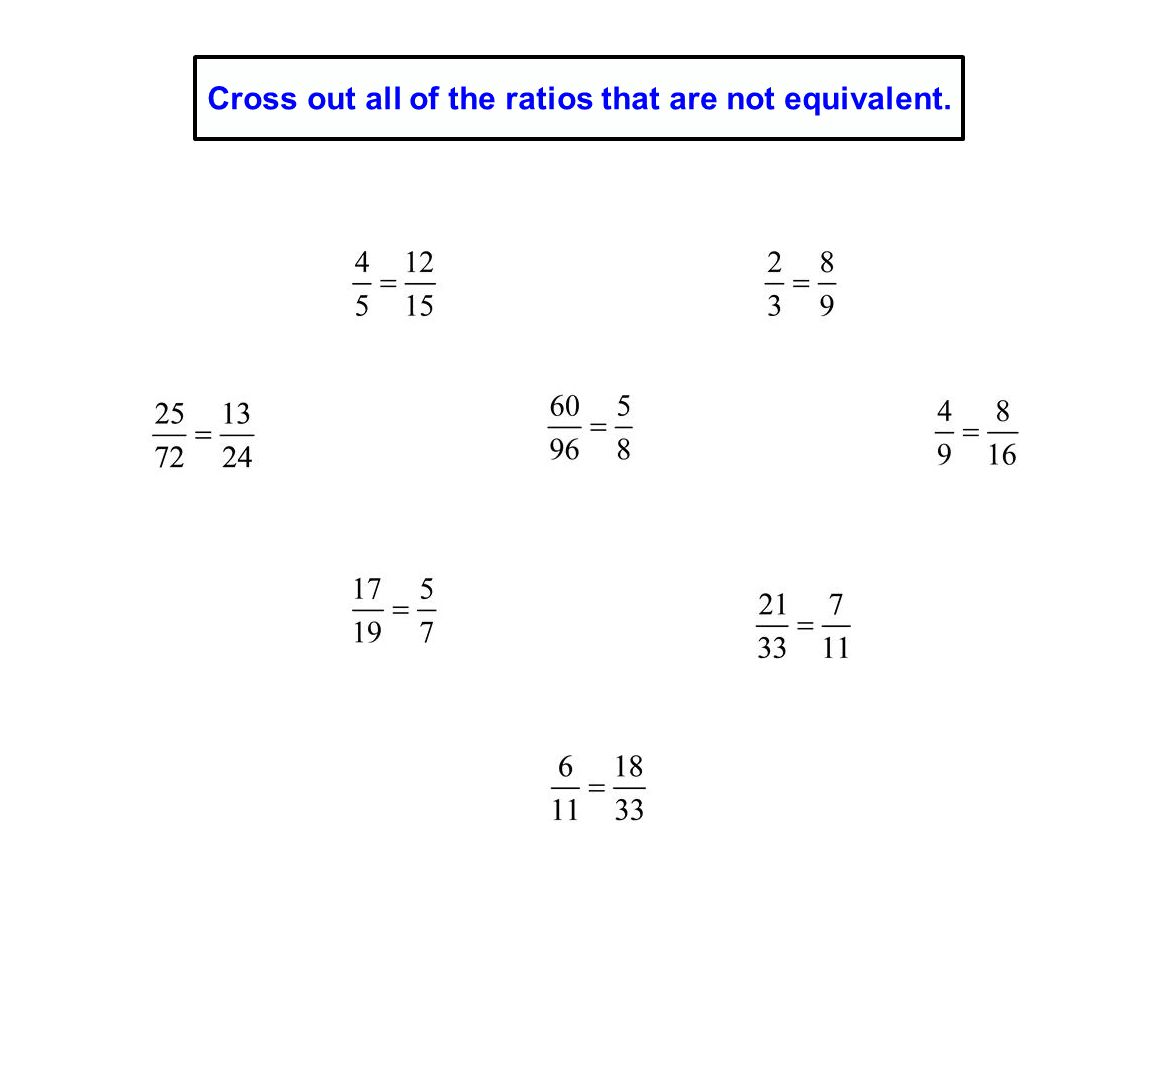 Cross out all of the ratios that are not equivalent.